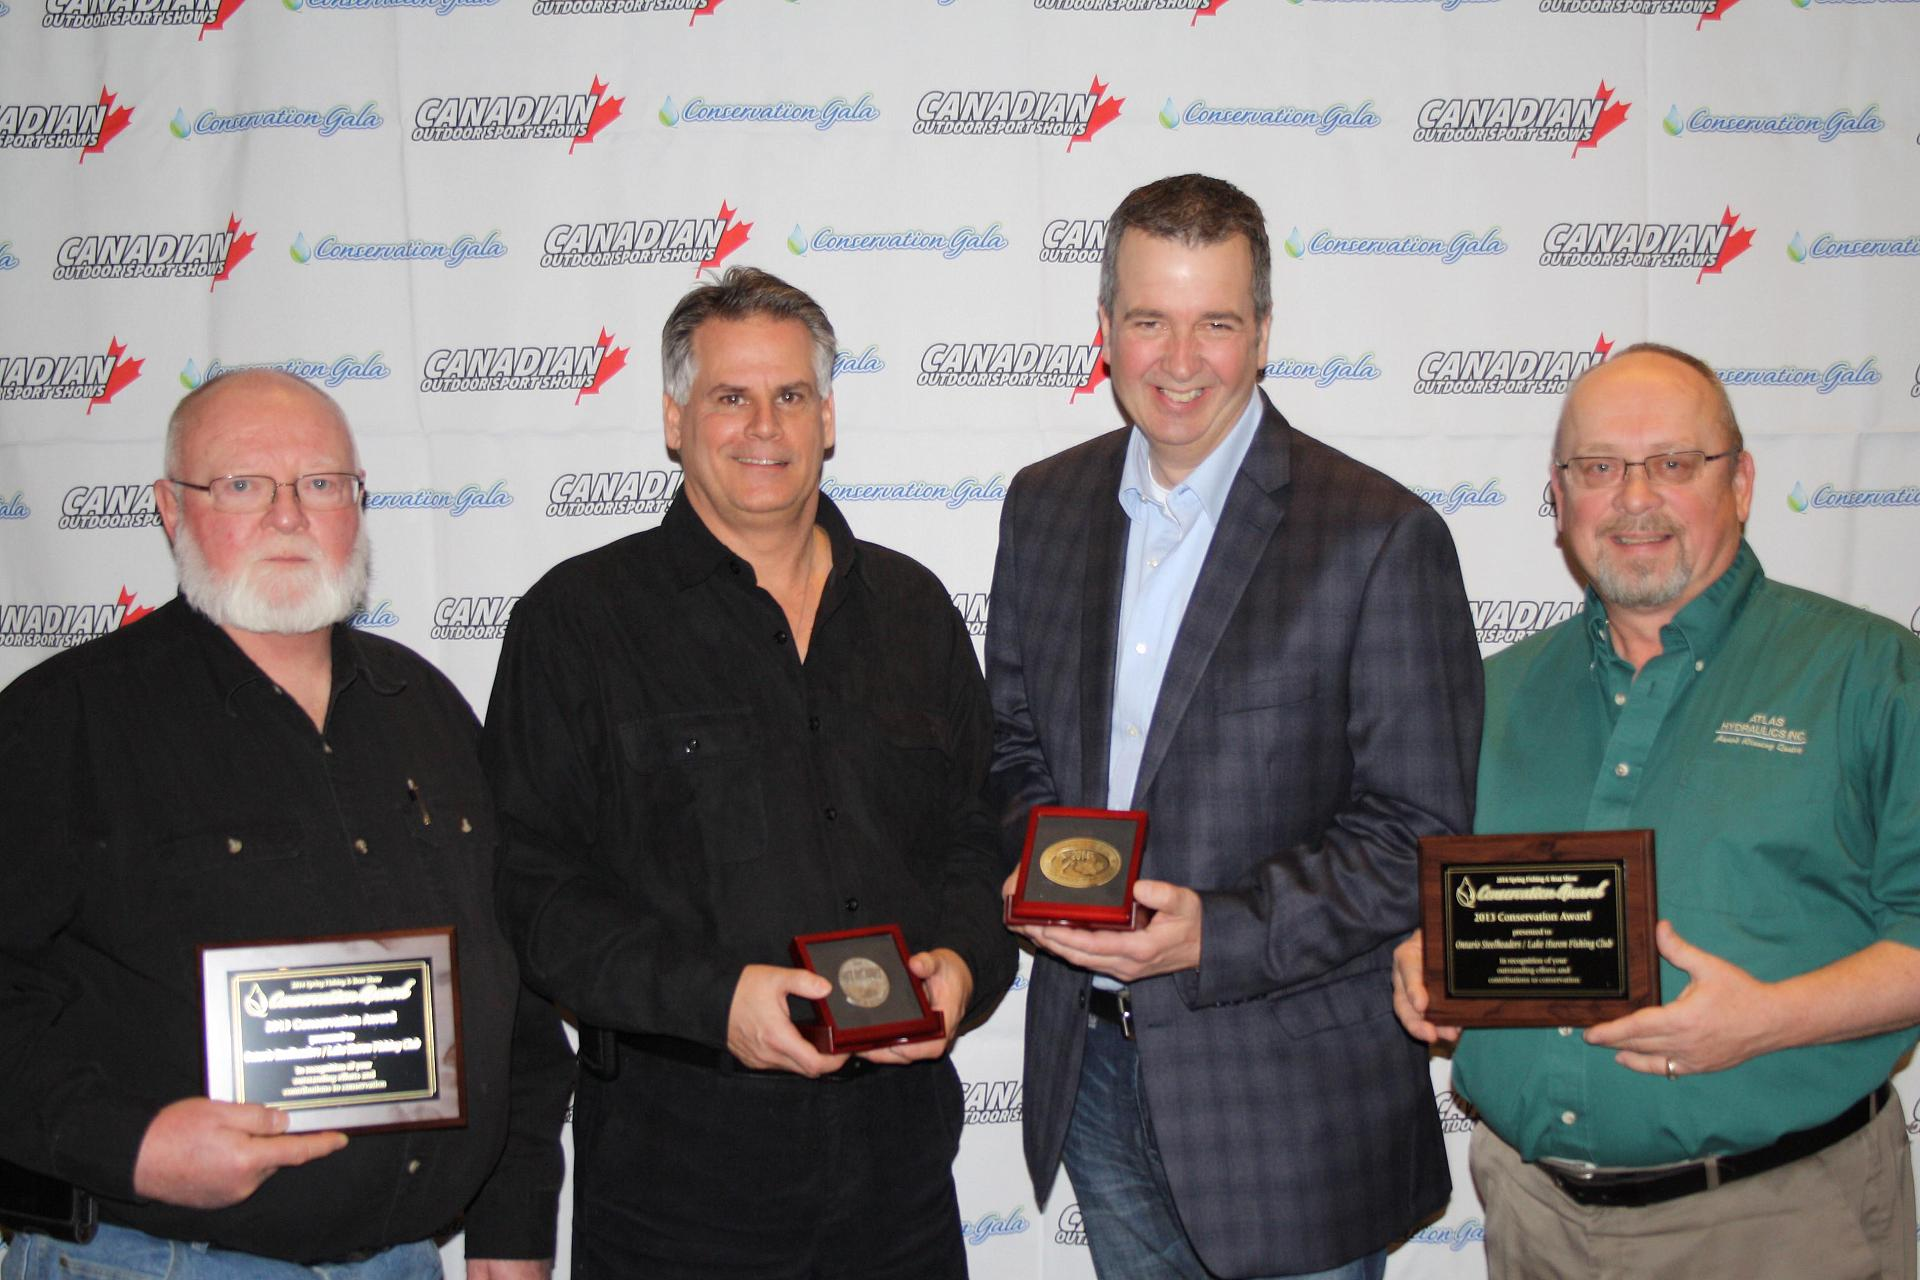 Award winners (L to R): Brian Garnet, Bruce Tufts, Patrick Campeau and Karl Redin